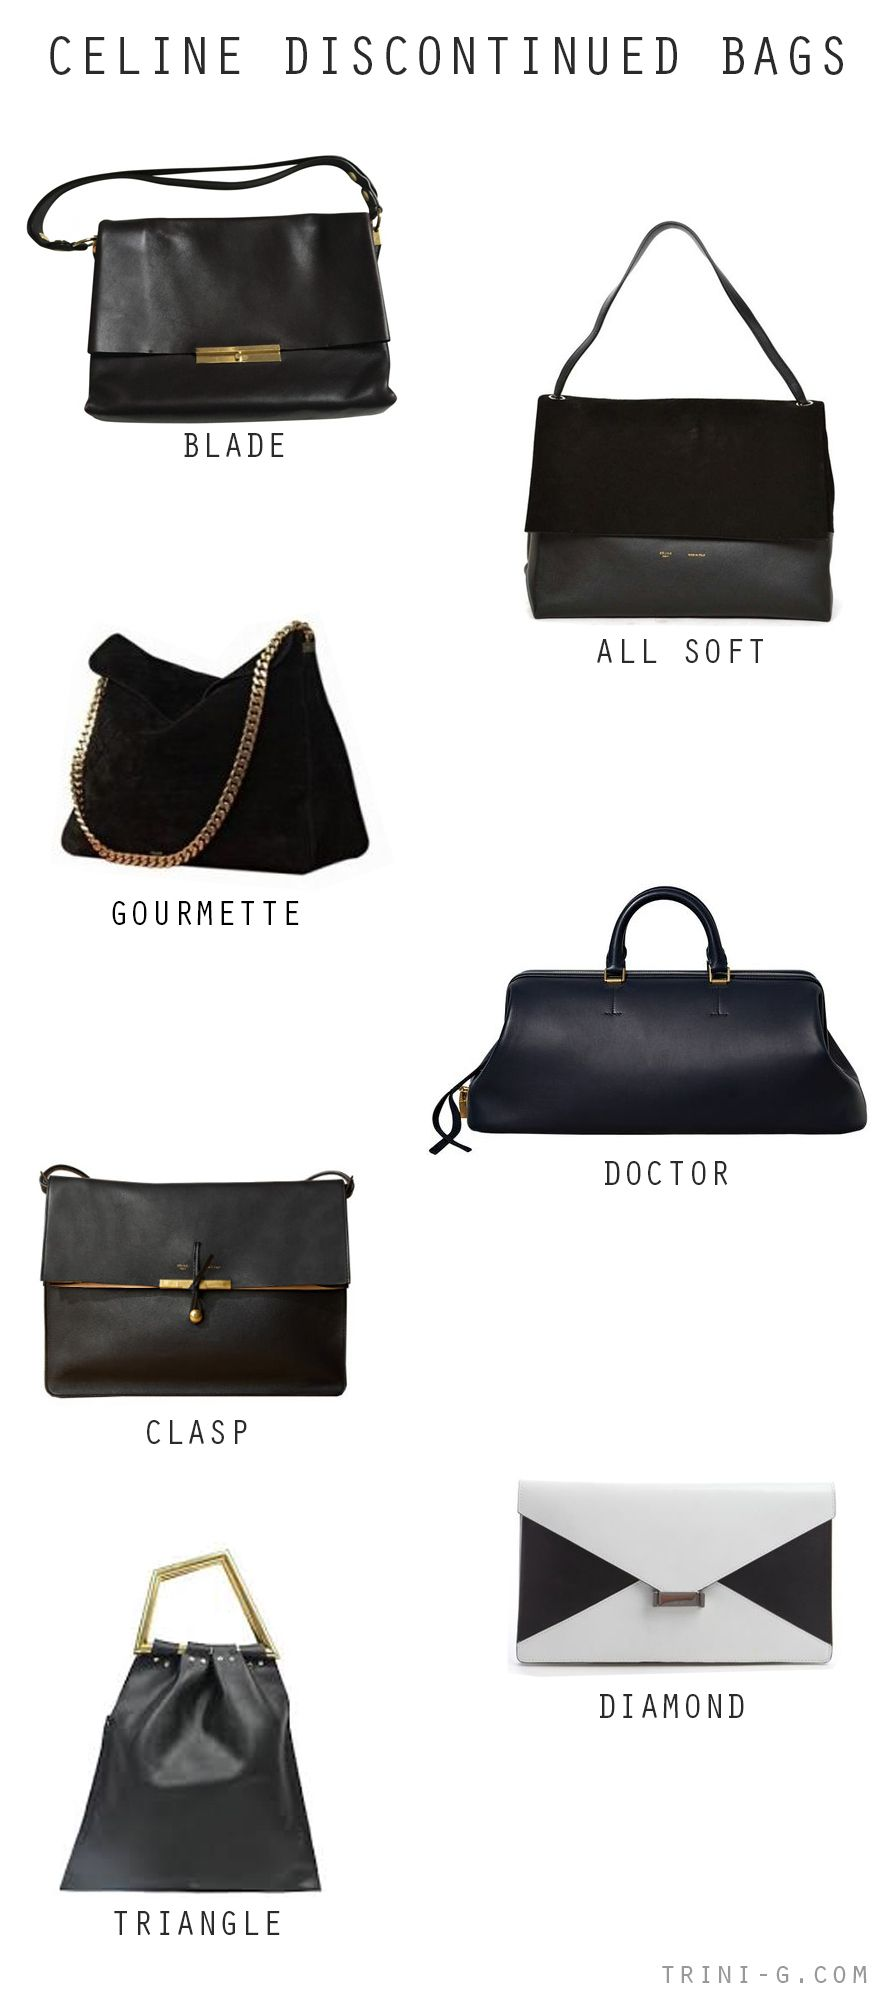 Trini Blog Celine Discontinued Bags